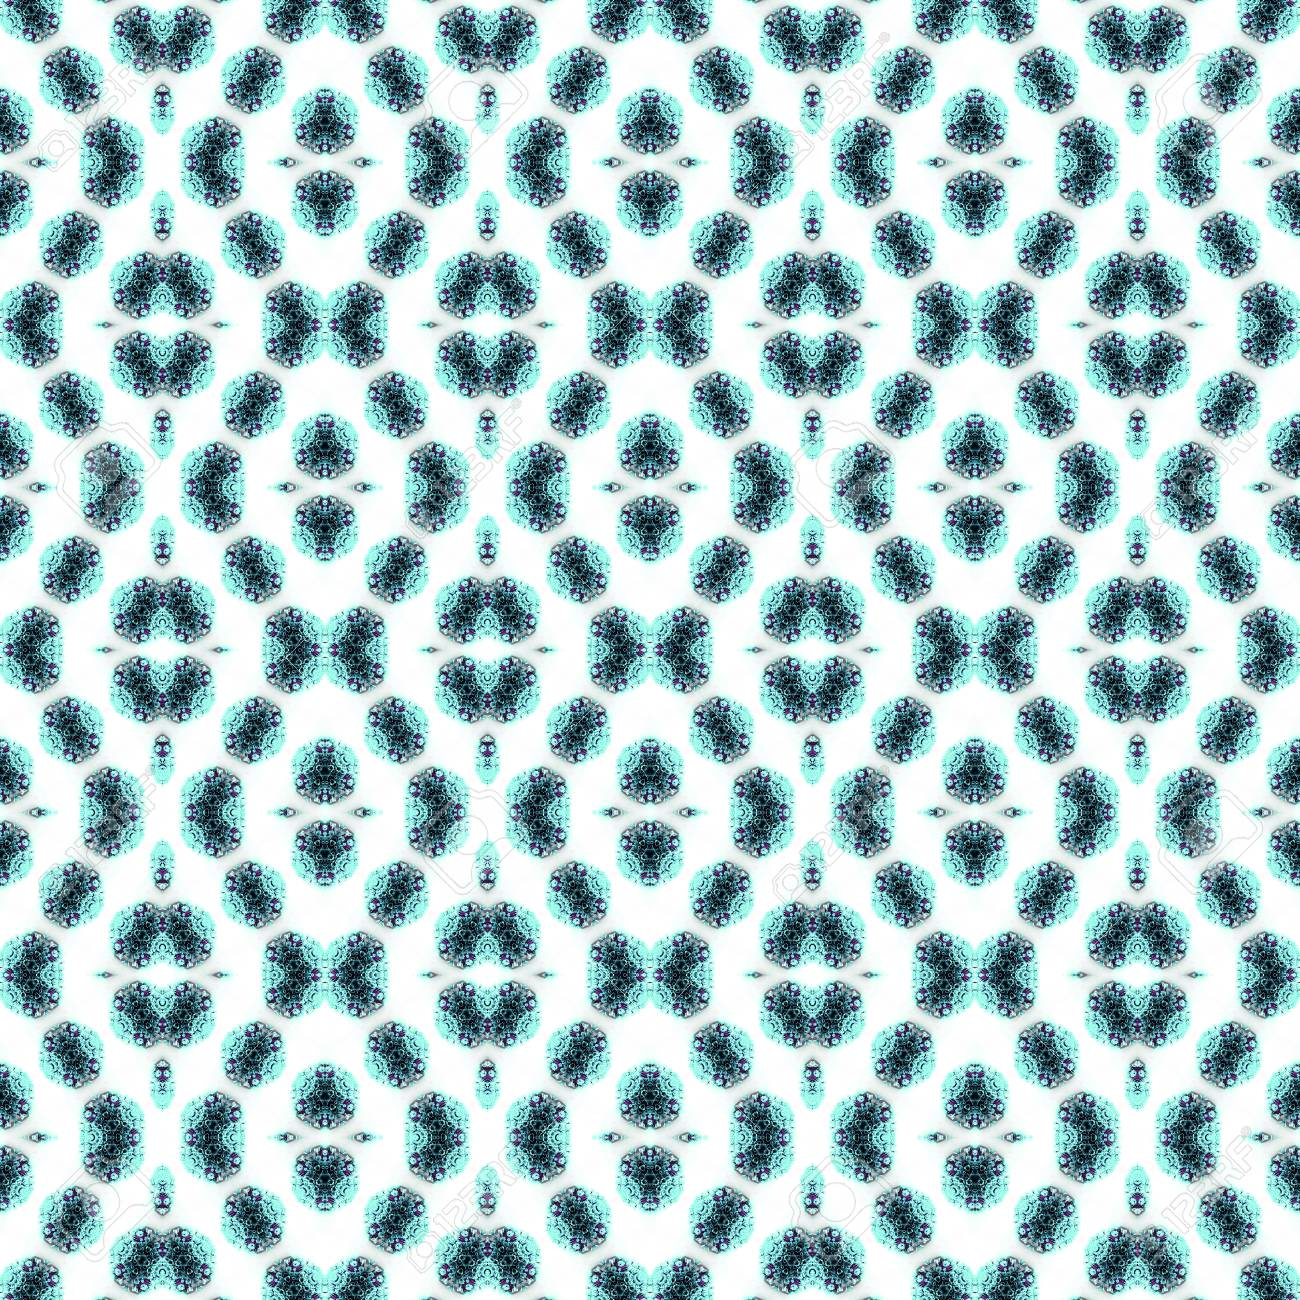 Abstract flowers seamless pattern background. Kaleidoscope from flowers. Hydraulic tile design. - 104074683